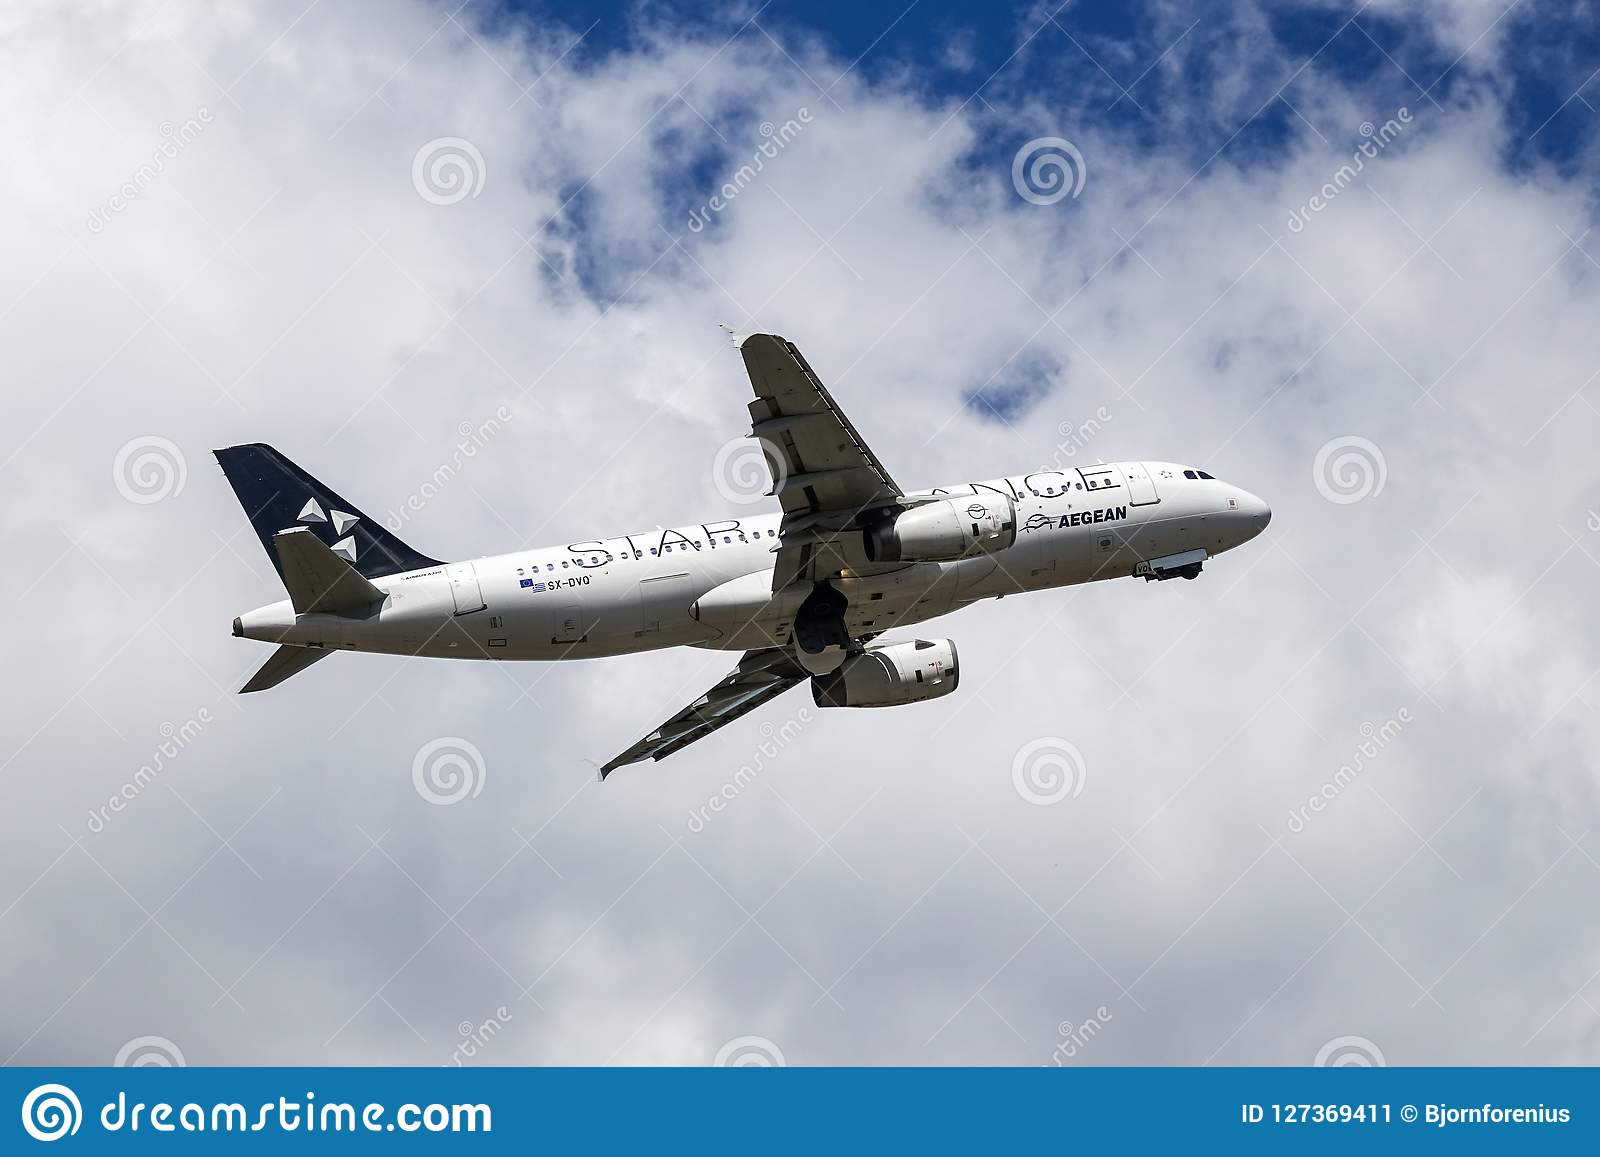 Aegean Airlines, Star Alliance, Airbus A320 - 200 decollano